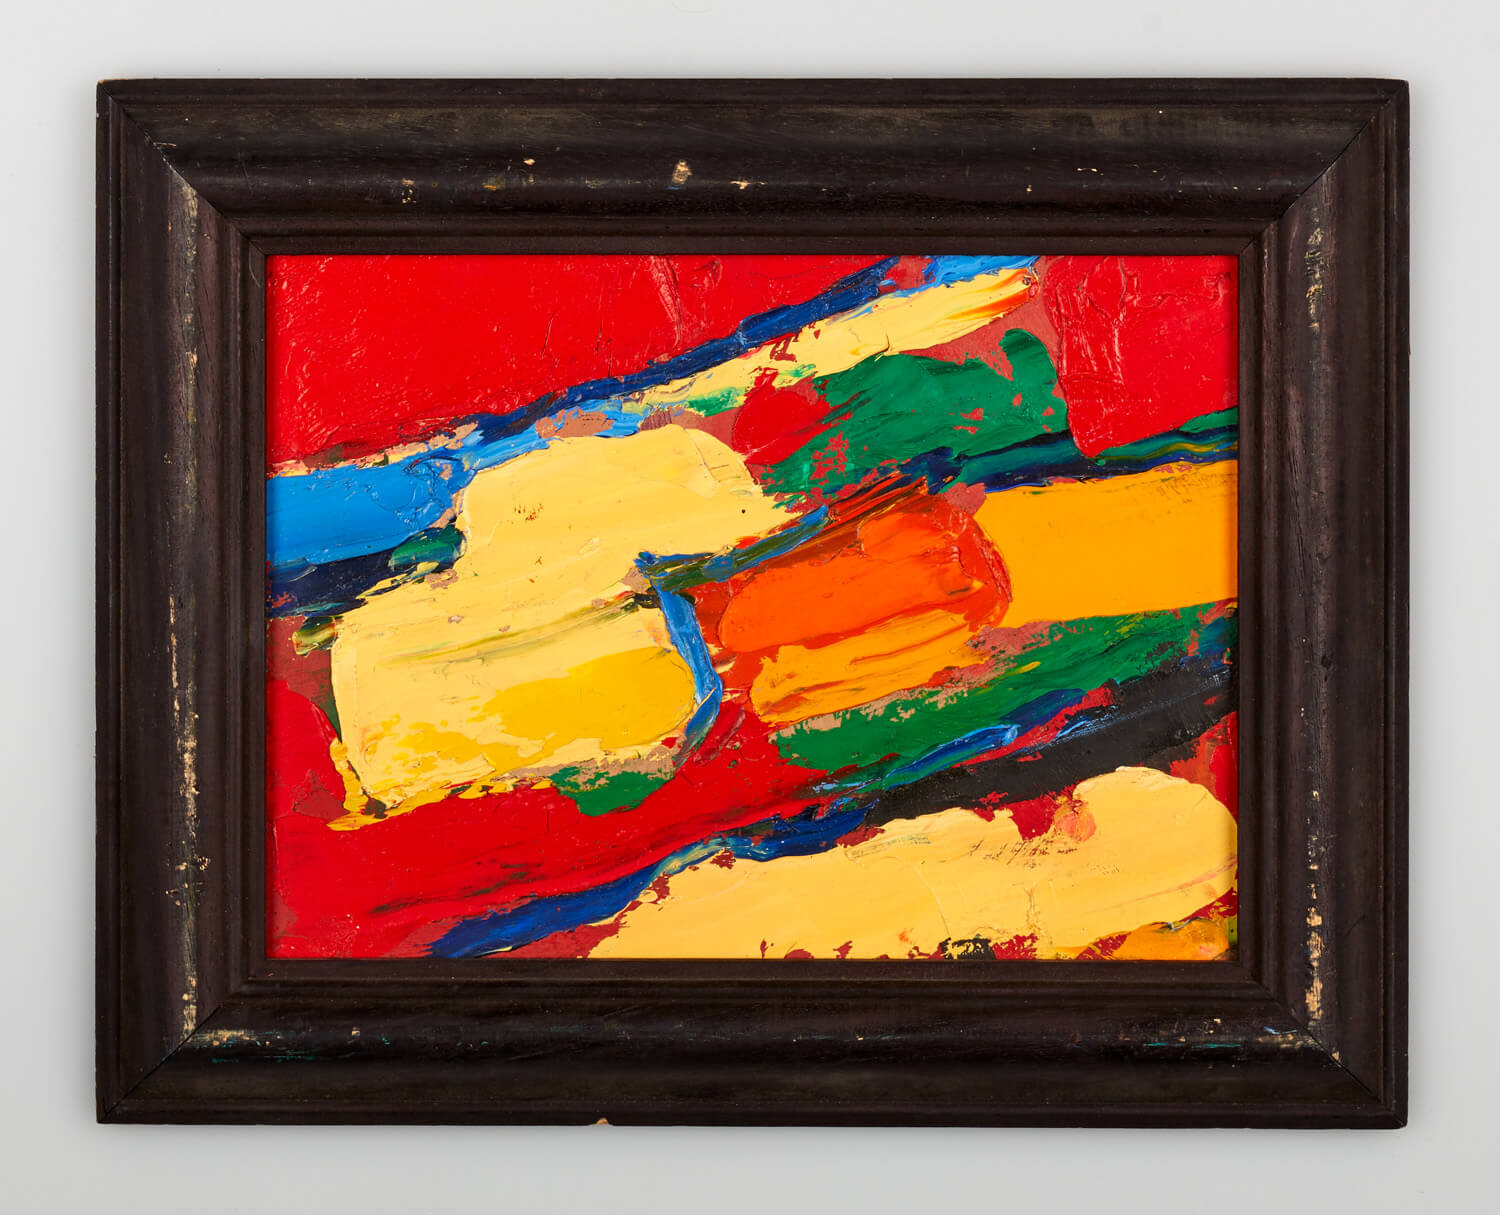 JB198 - Abstract - 1992 - 20 x 27 cm - Oil on panel